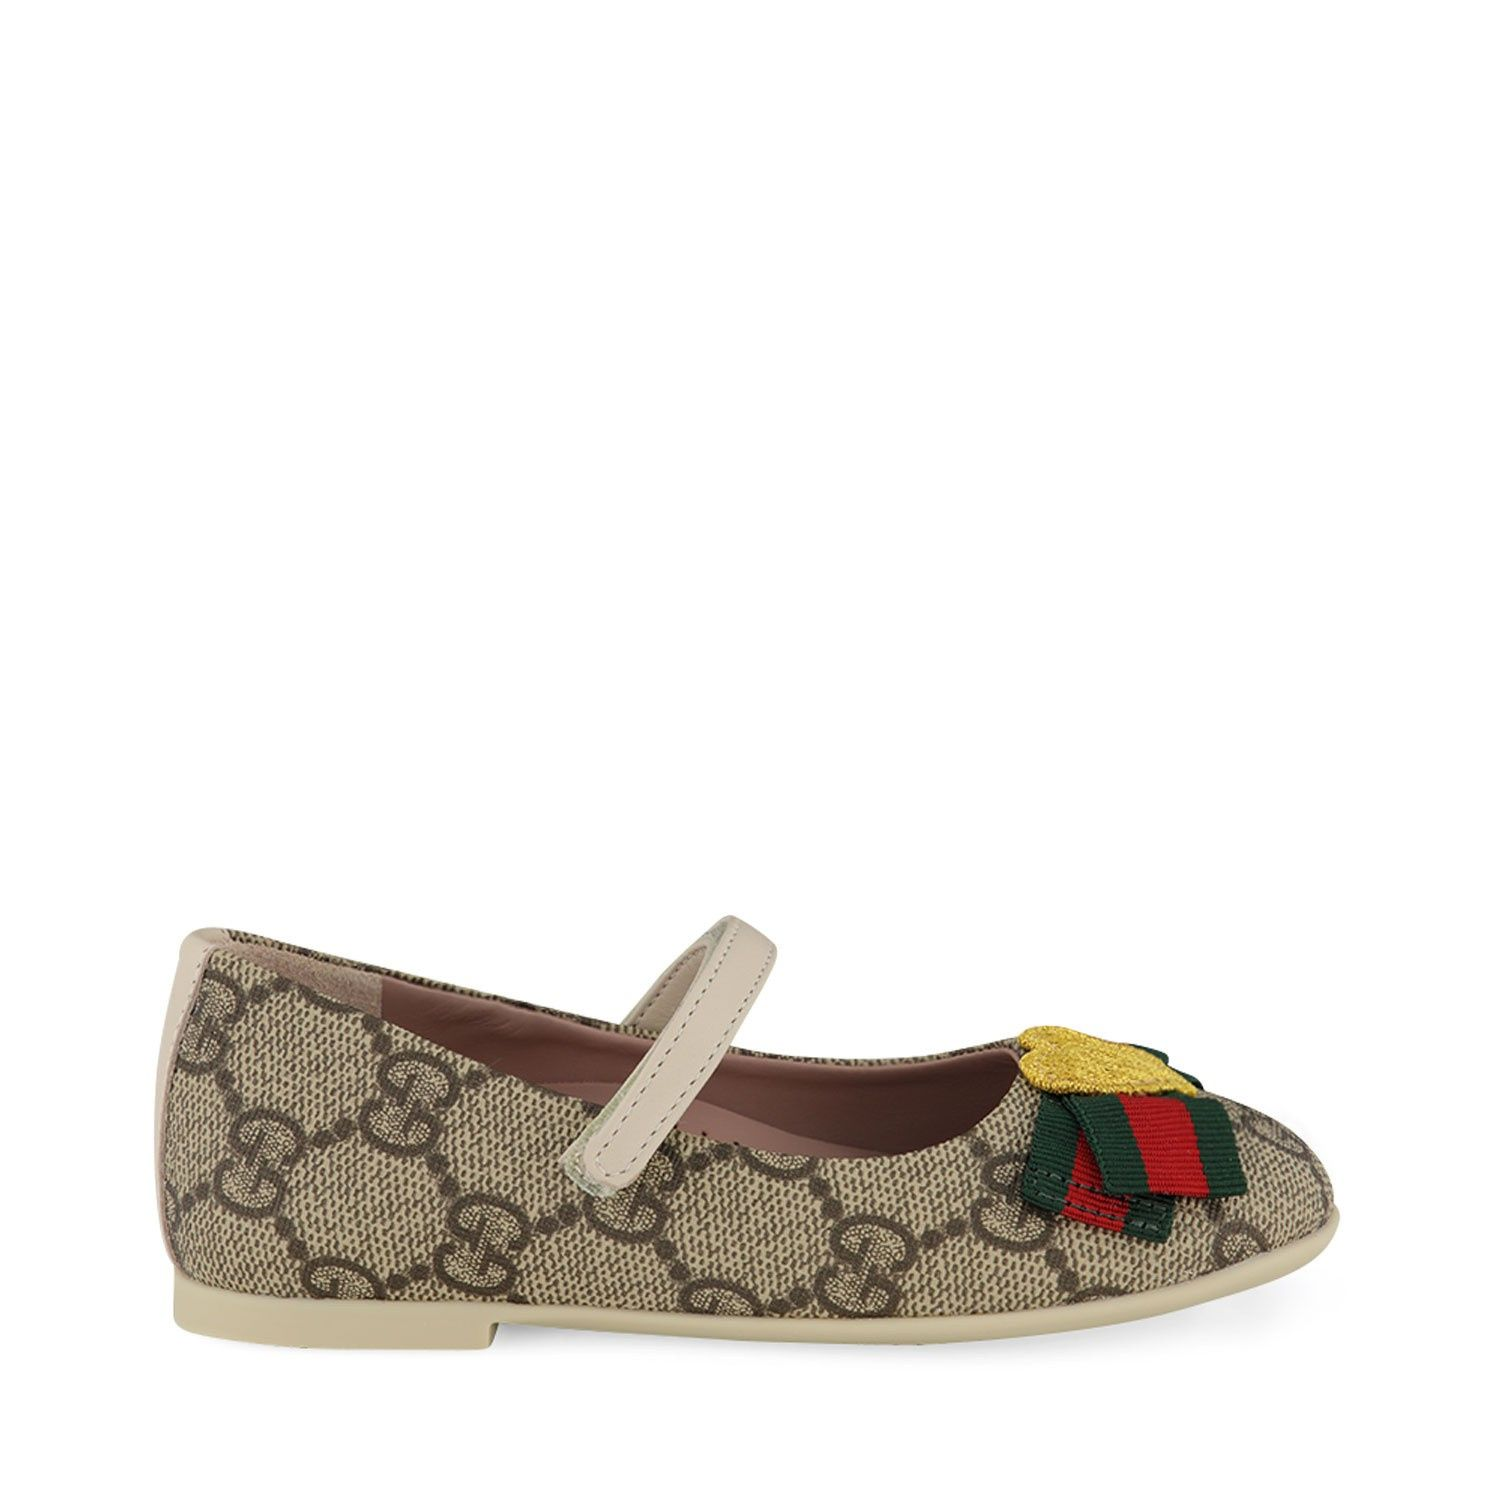 Picture of Gucci 418997 kids shoes beige